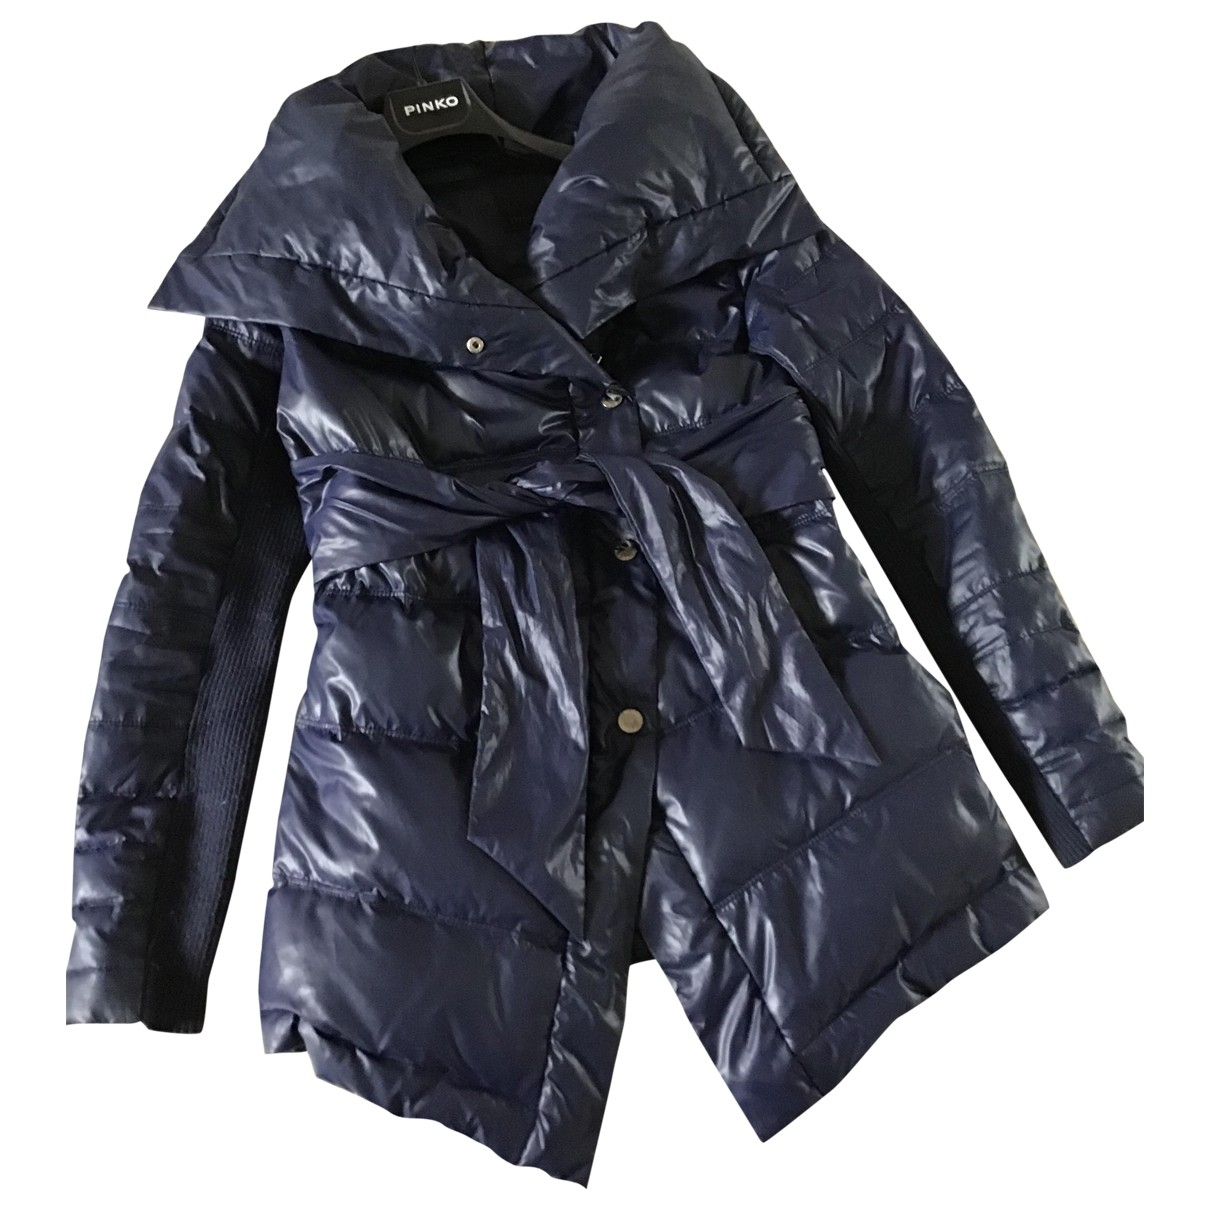 Pinko \N Blue jacket for Women 40 IT